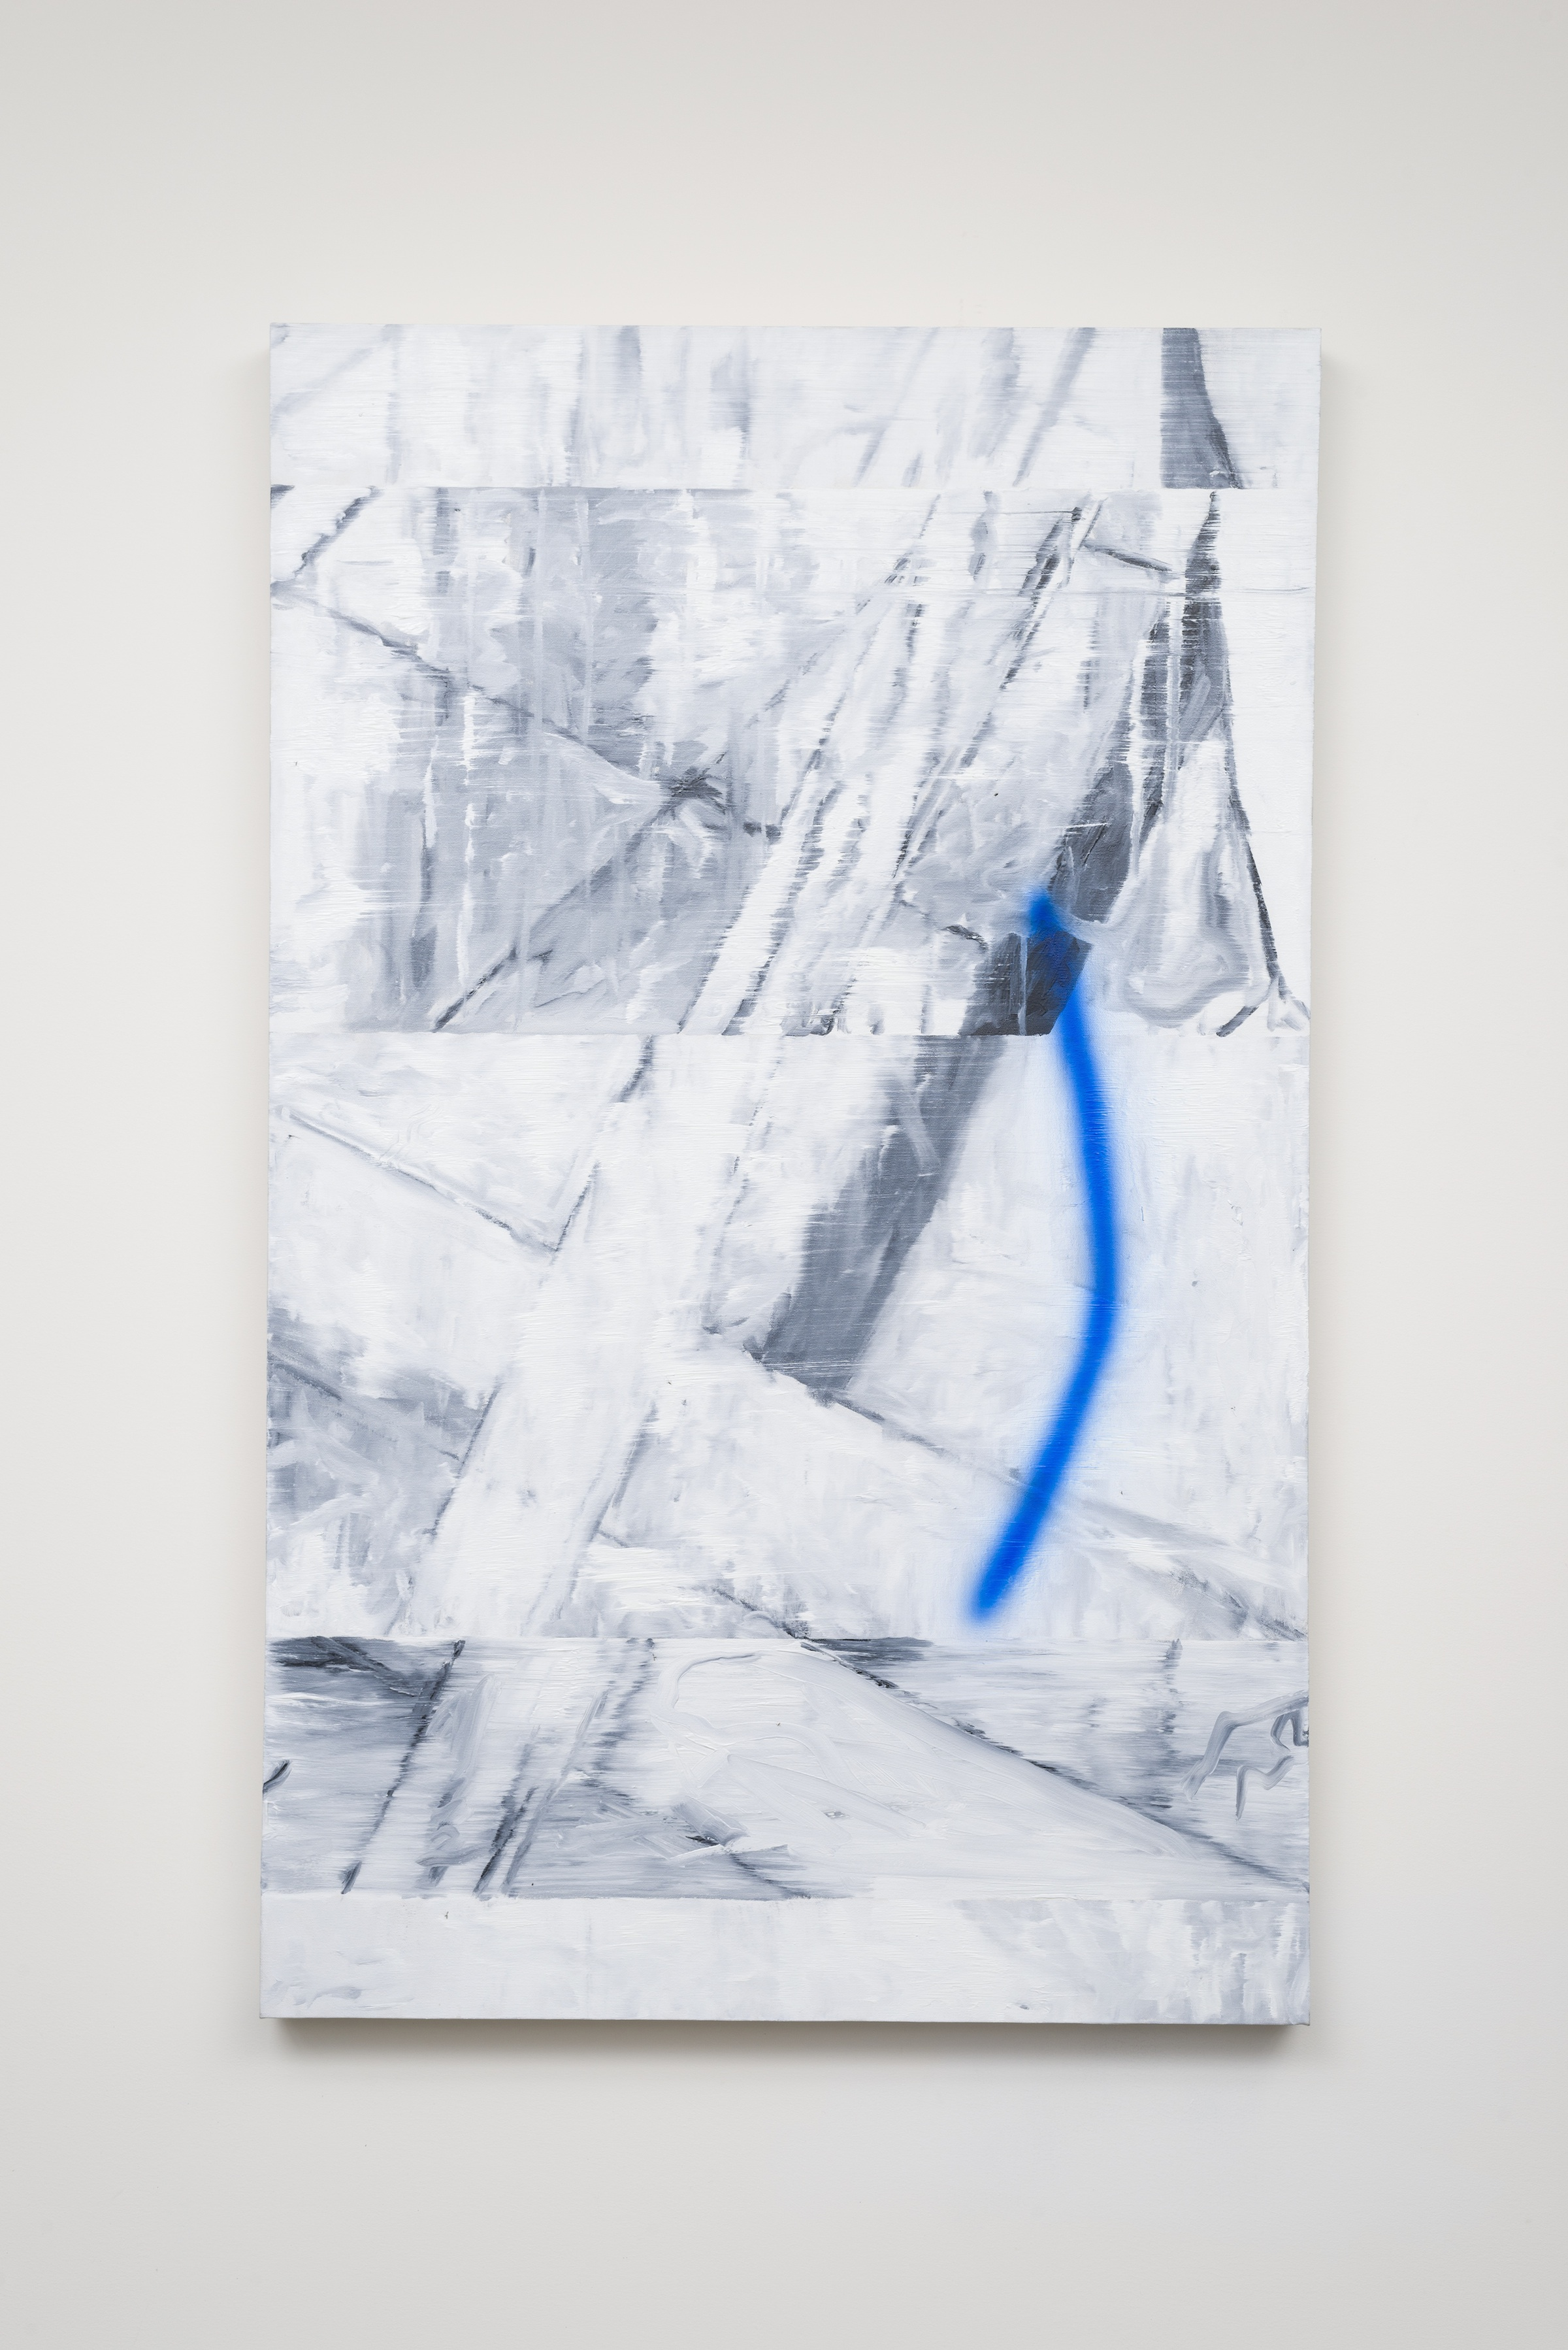 Jason Burgess,  last four years less blurred , oil on canvas, 42 x 30 inches